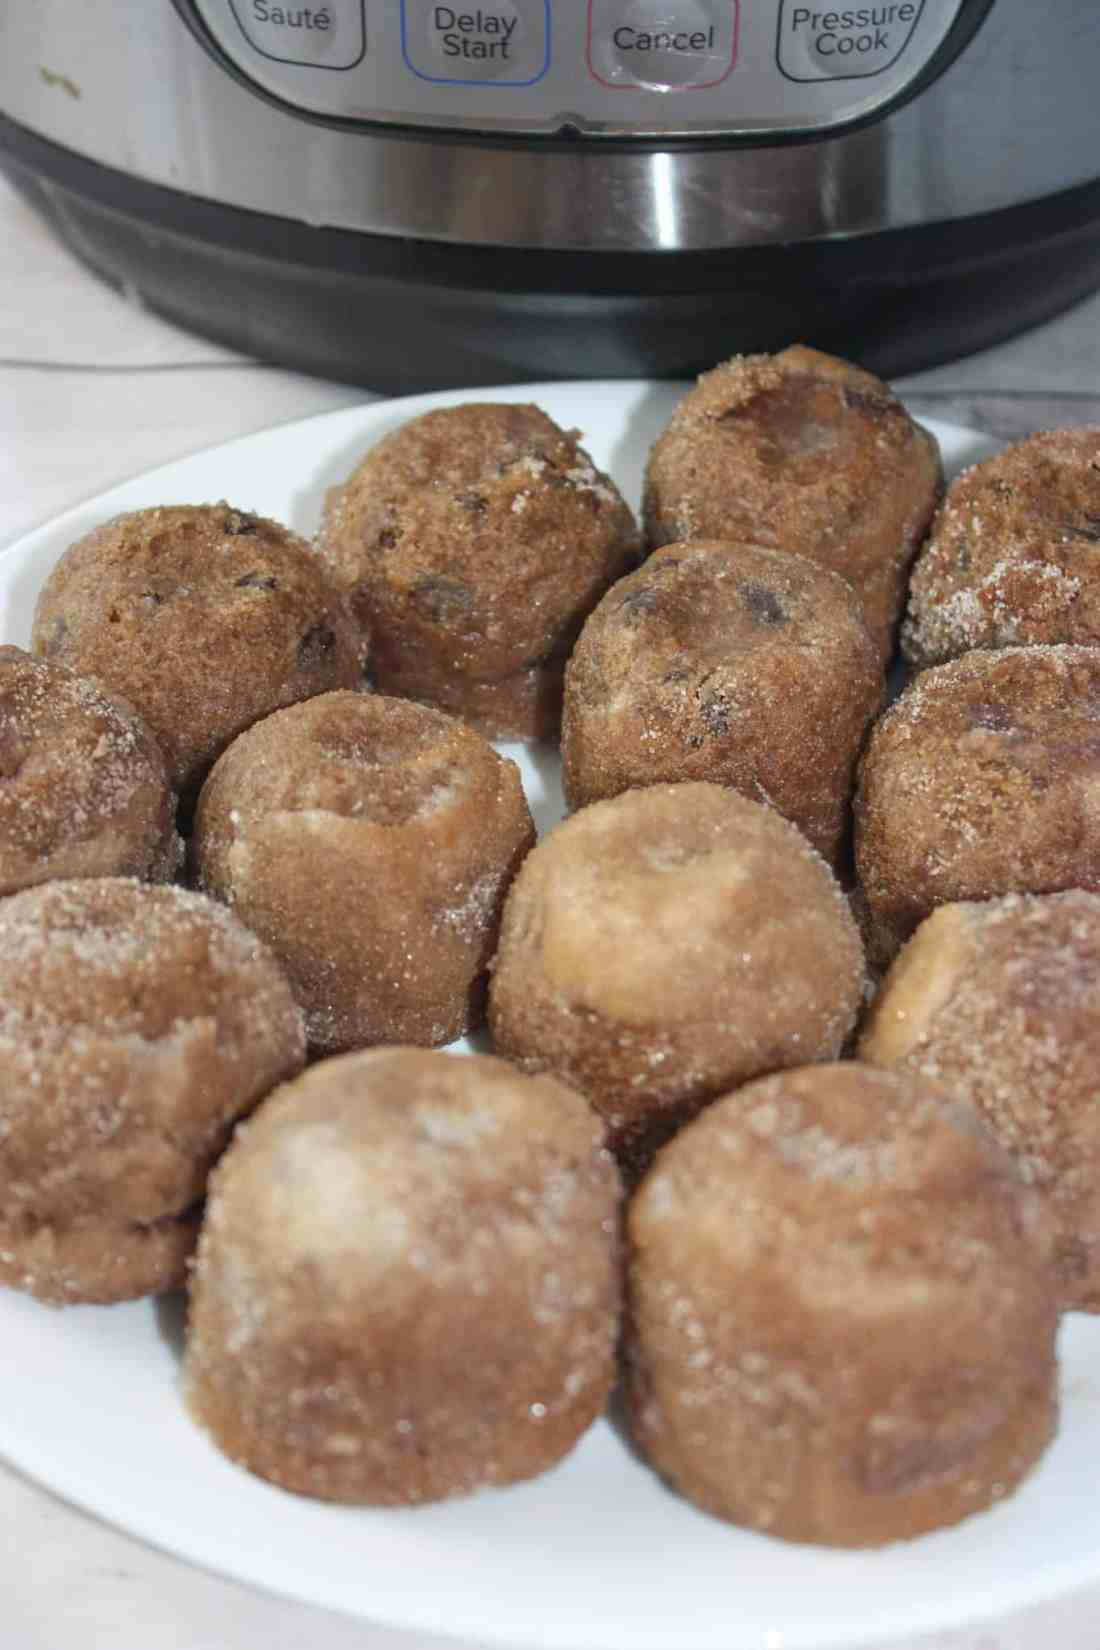 Instant Pot Glazed Cinnamon Bites are a little taste of heaven. They are one of the best gluten free treats I have tasted! These easy pressure cooker morsels loaded with cinnamon, and raisins if you like, are moist and delicious.